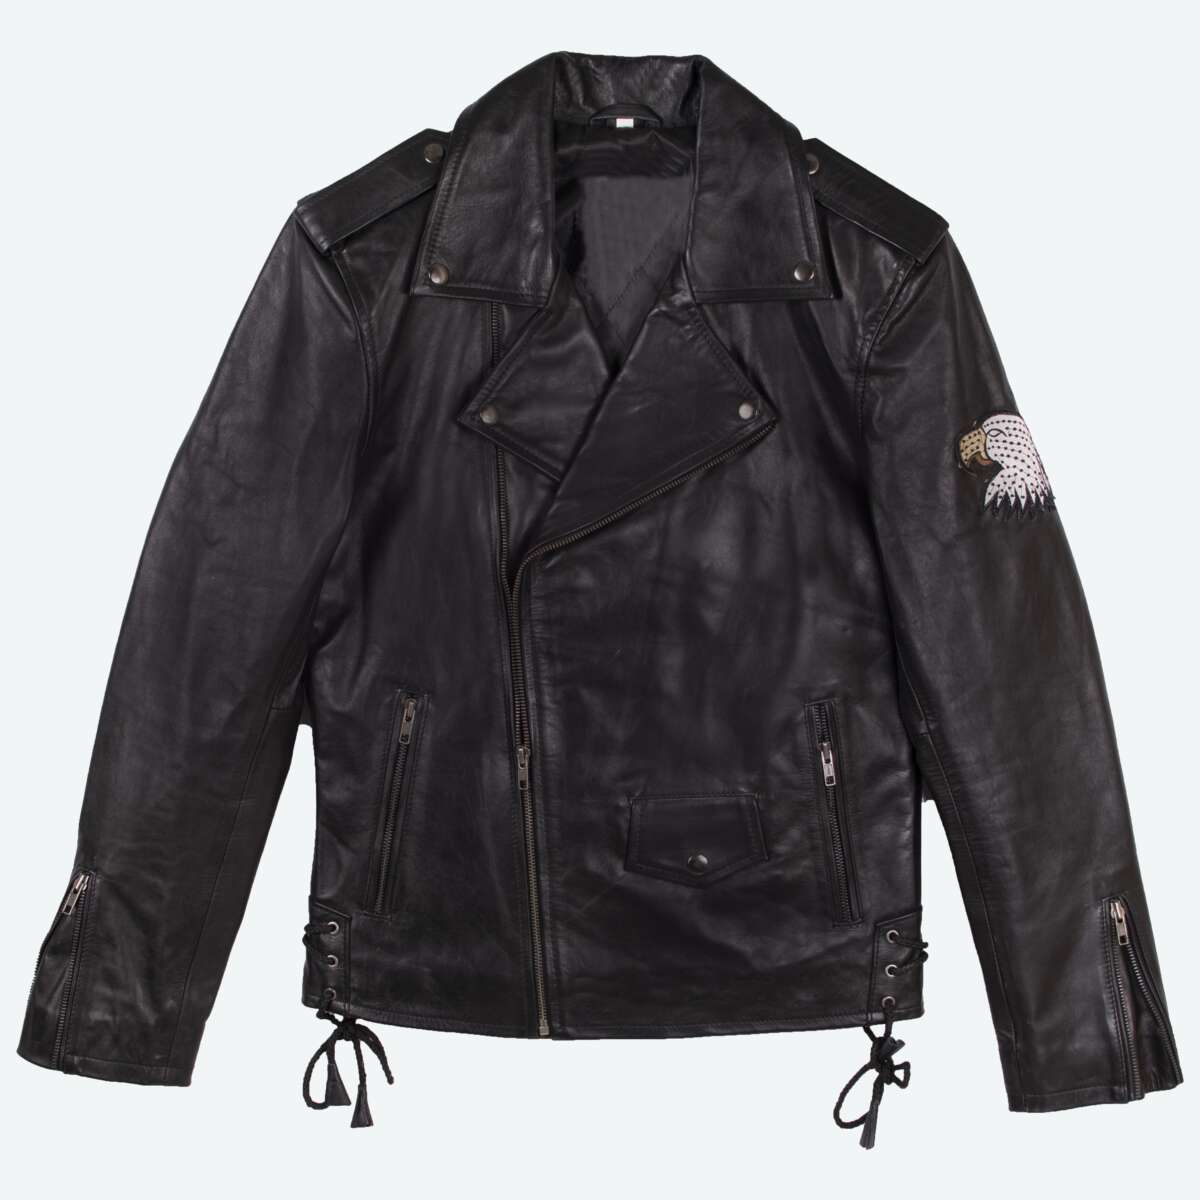 USA Eagle Biker Jacket